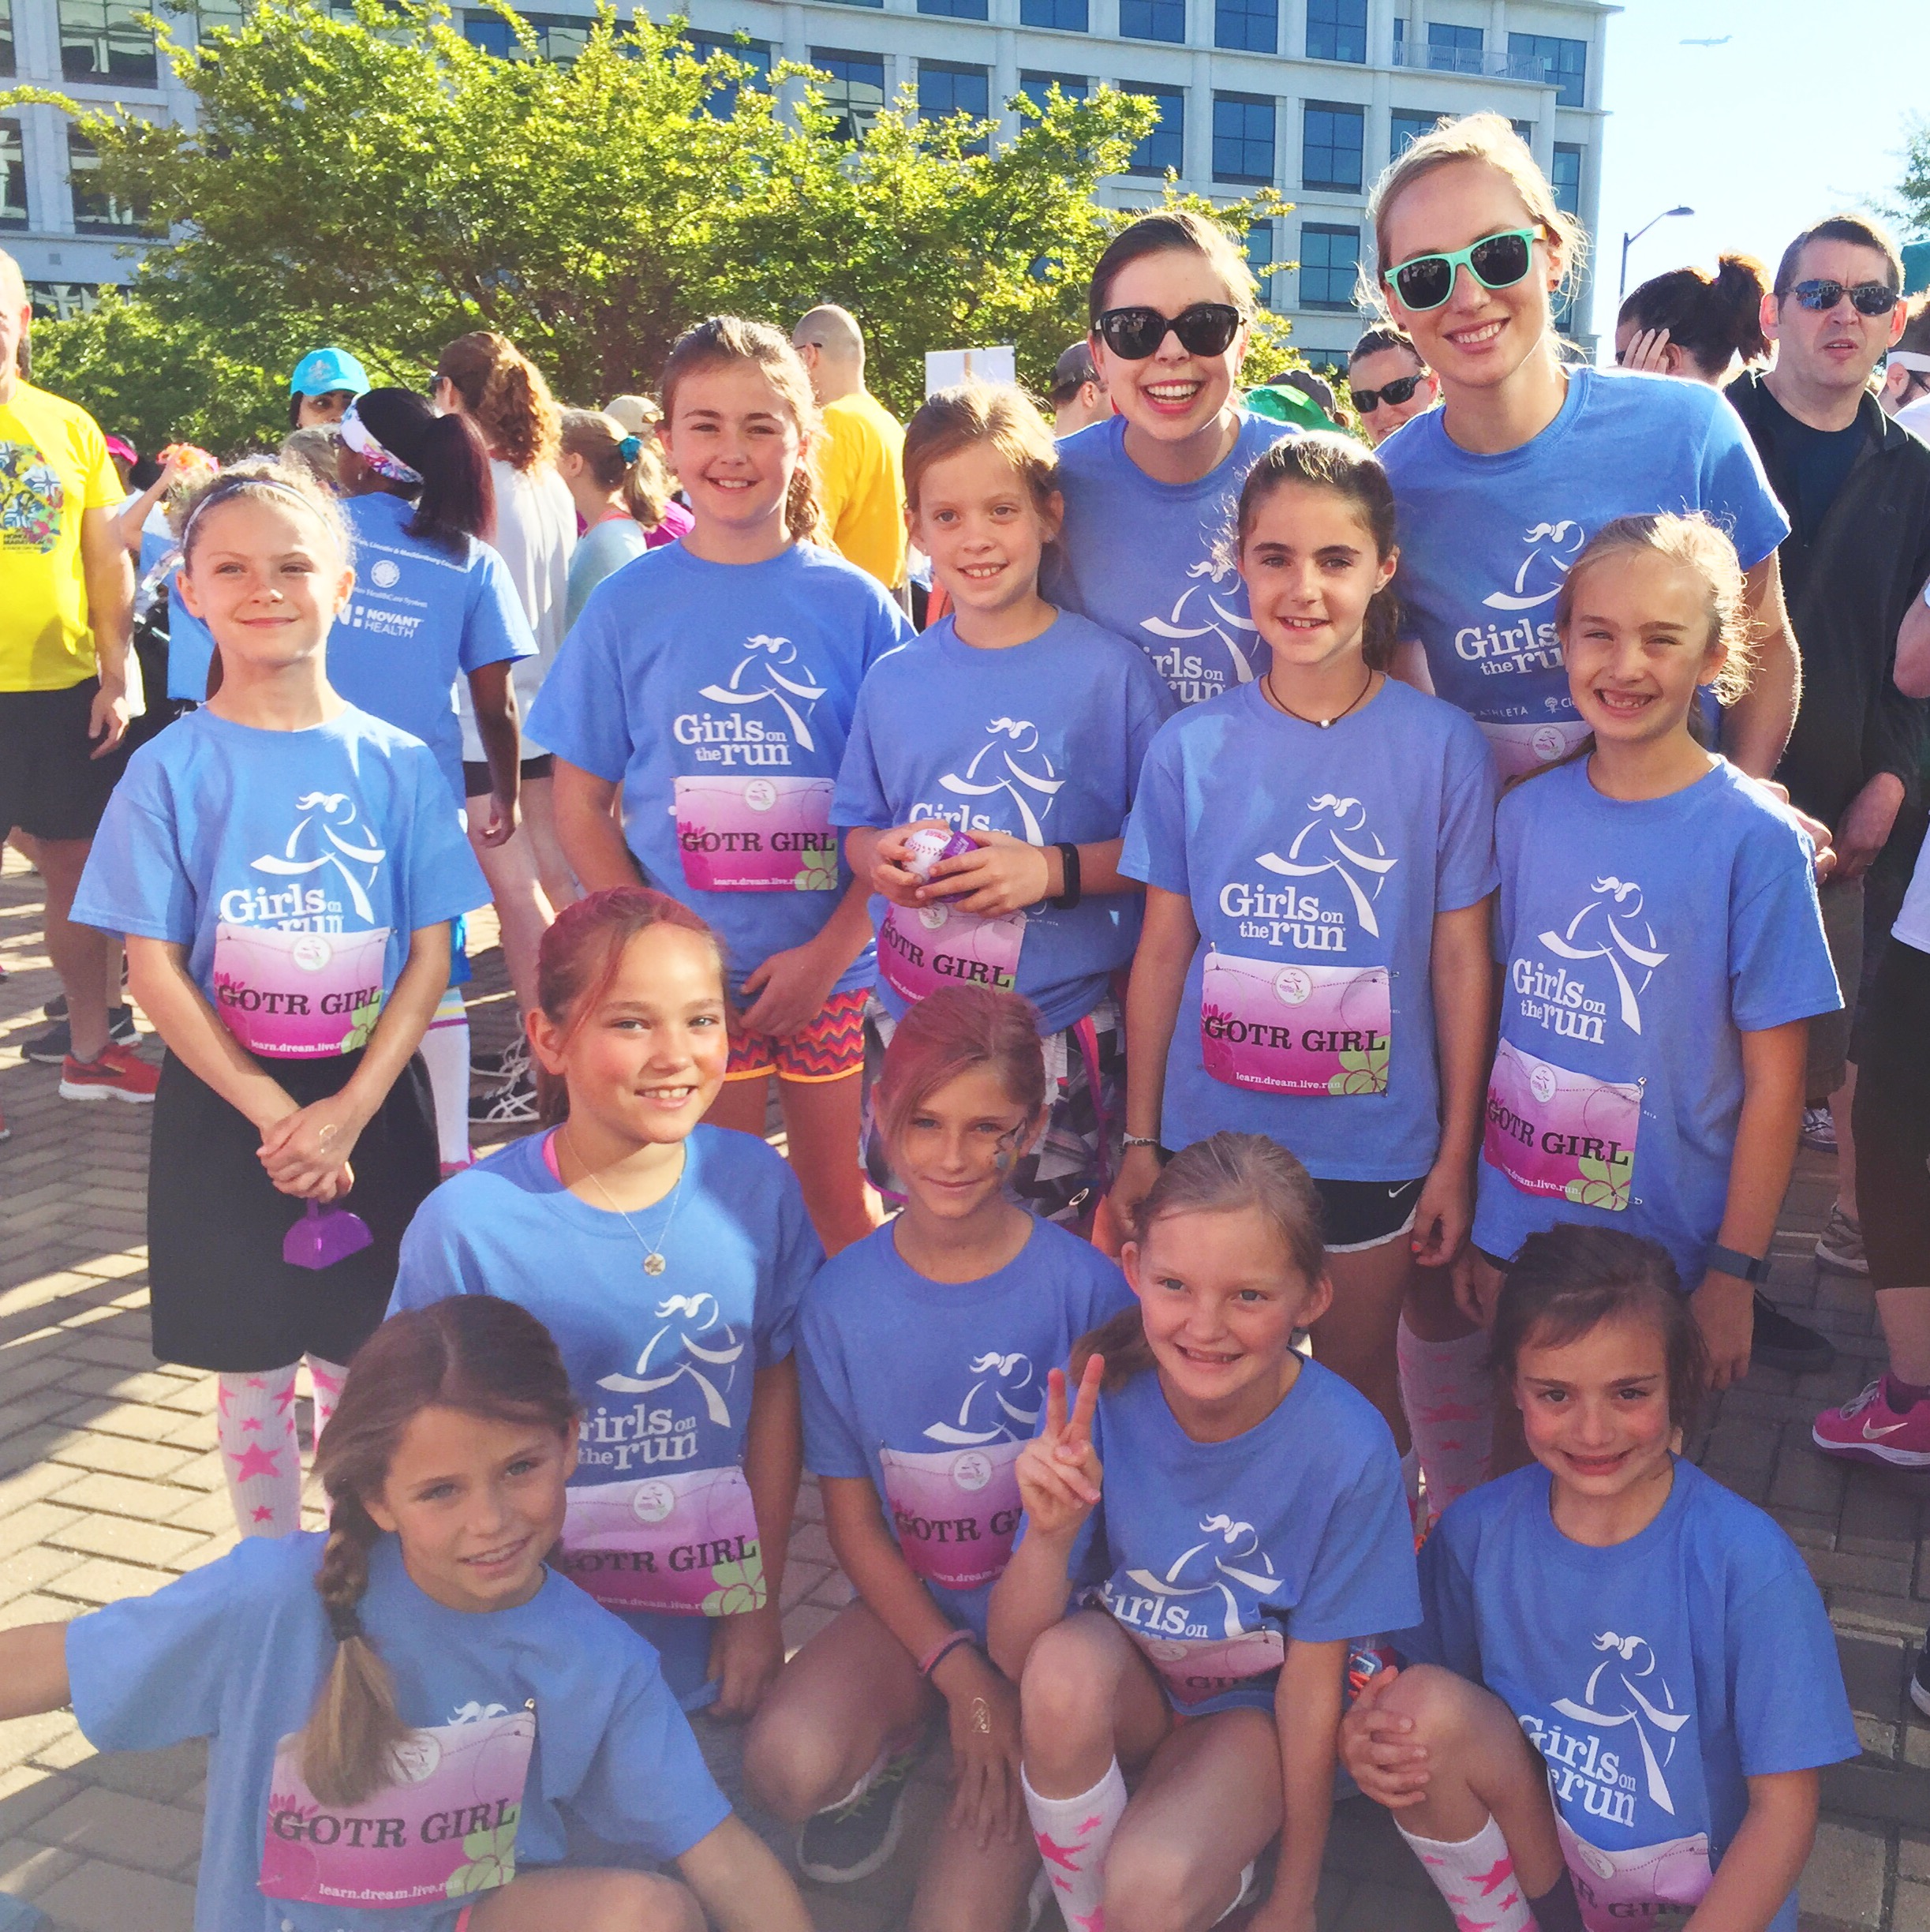 A Girls on the Run coach with her team at the 5K